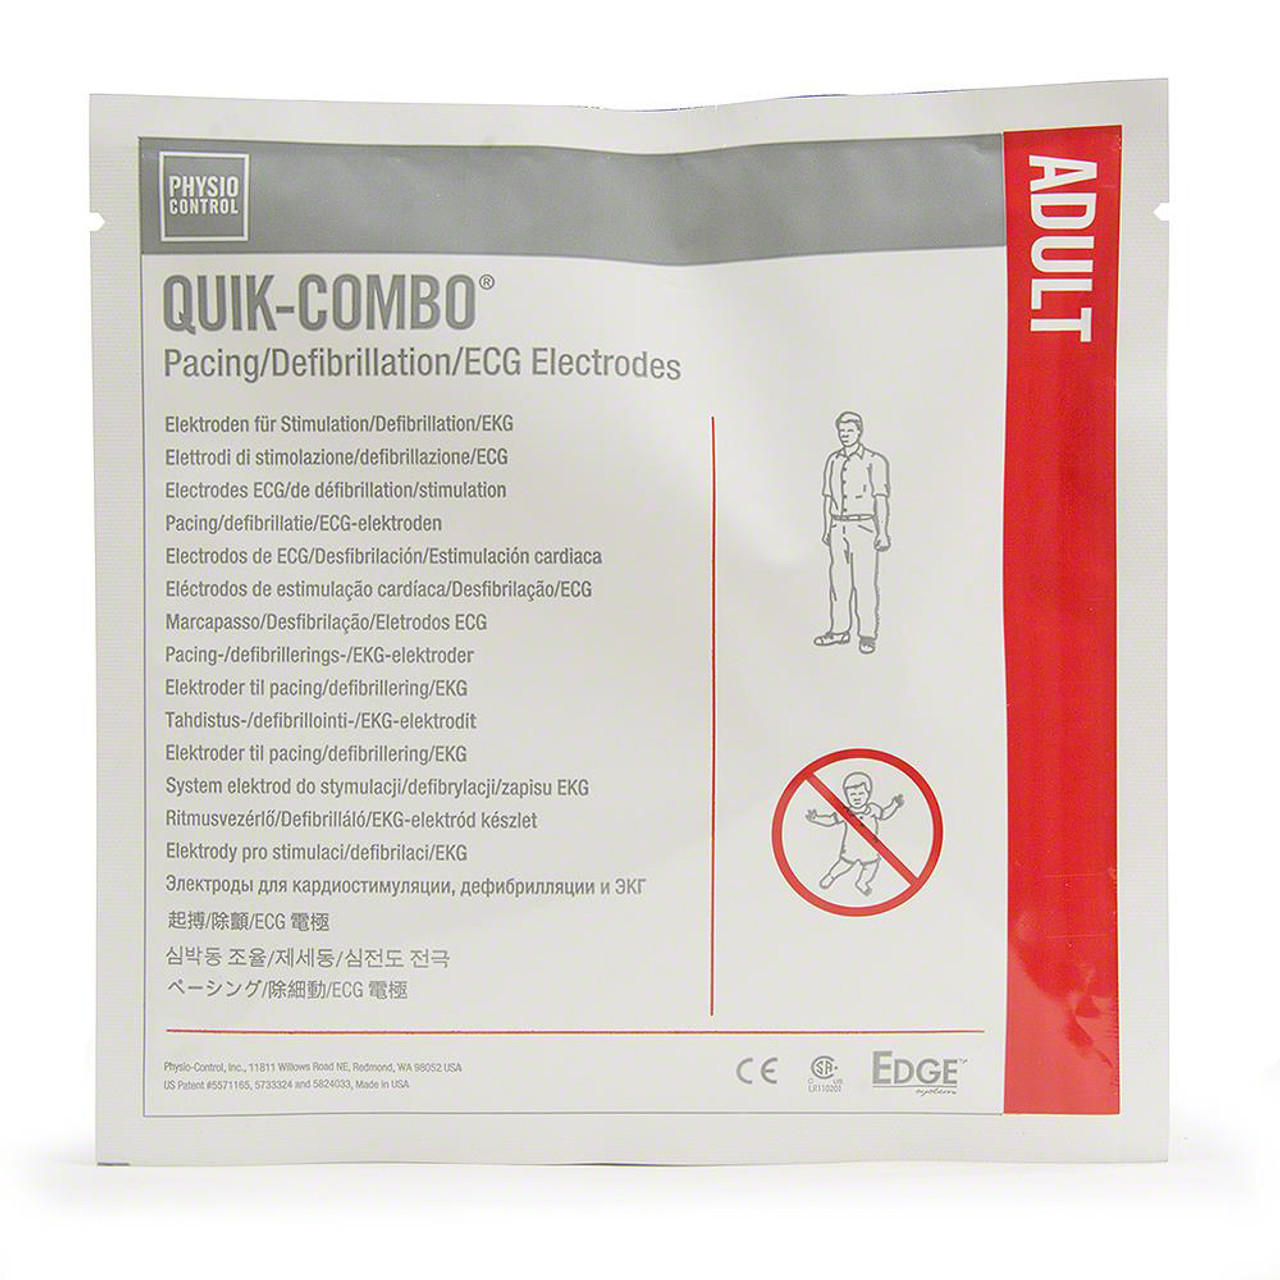 Adult Quik Combo Defibrillation Pads by Physio Control